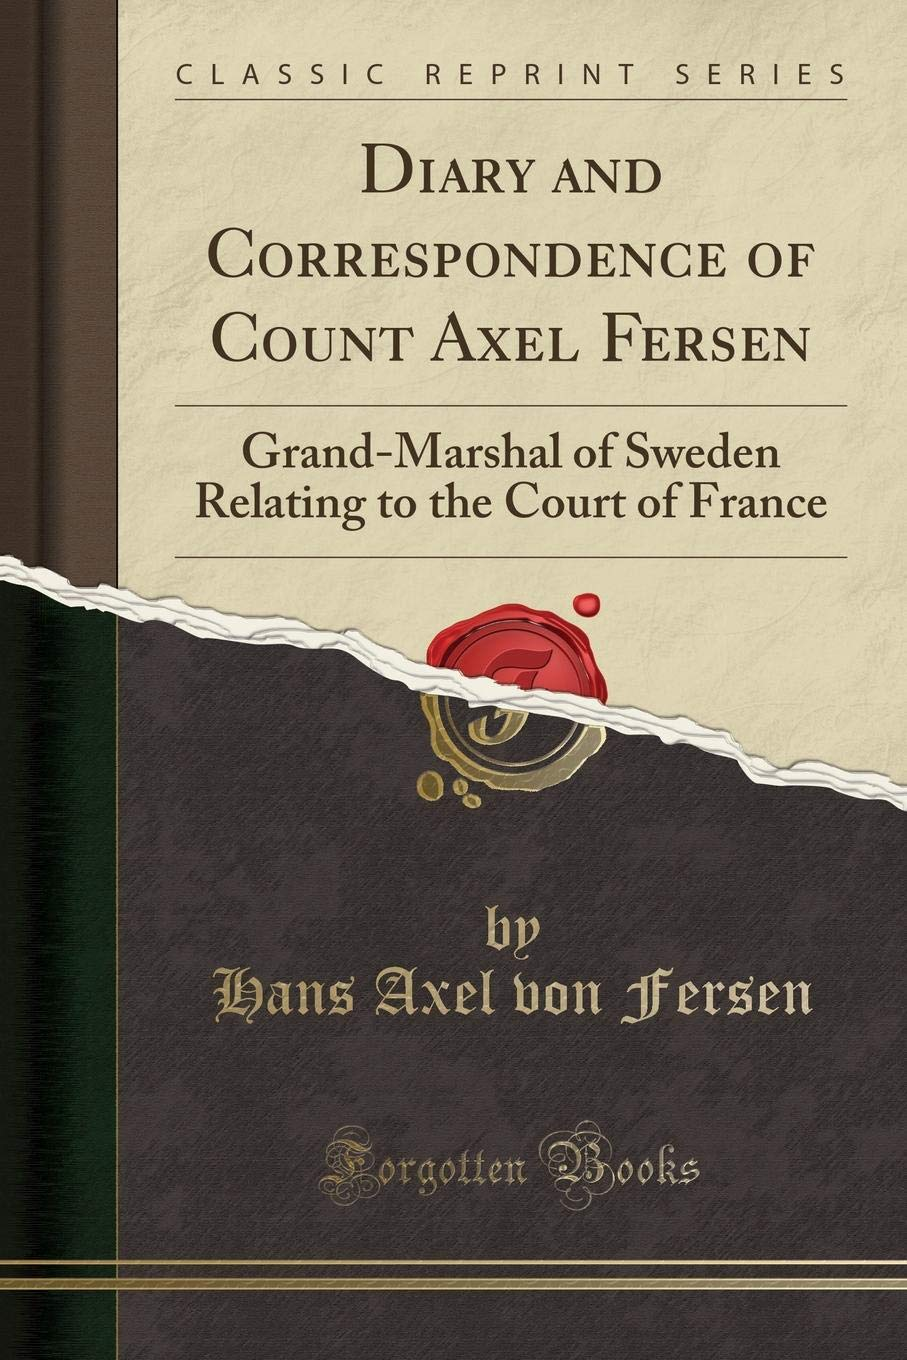 Diary and Correspondence of Count Axel Fersen: Grand-Marshal of Sweden  Relating to the Court of France (Classic Reprint) Paperback – January 7,  2019